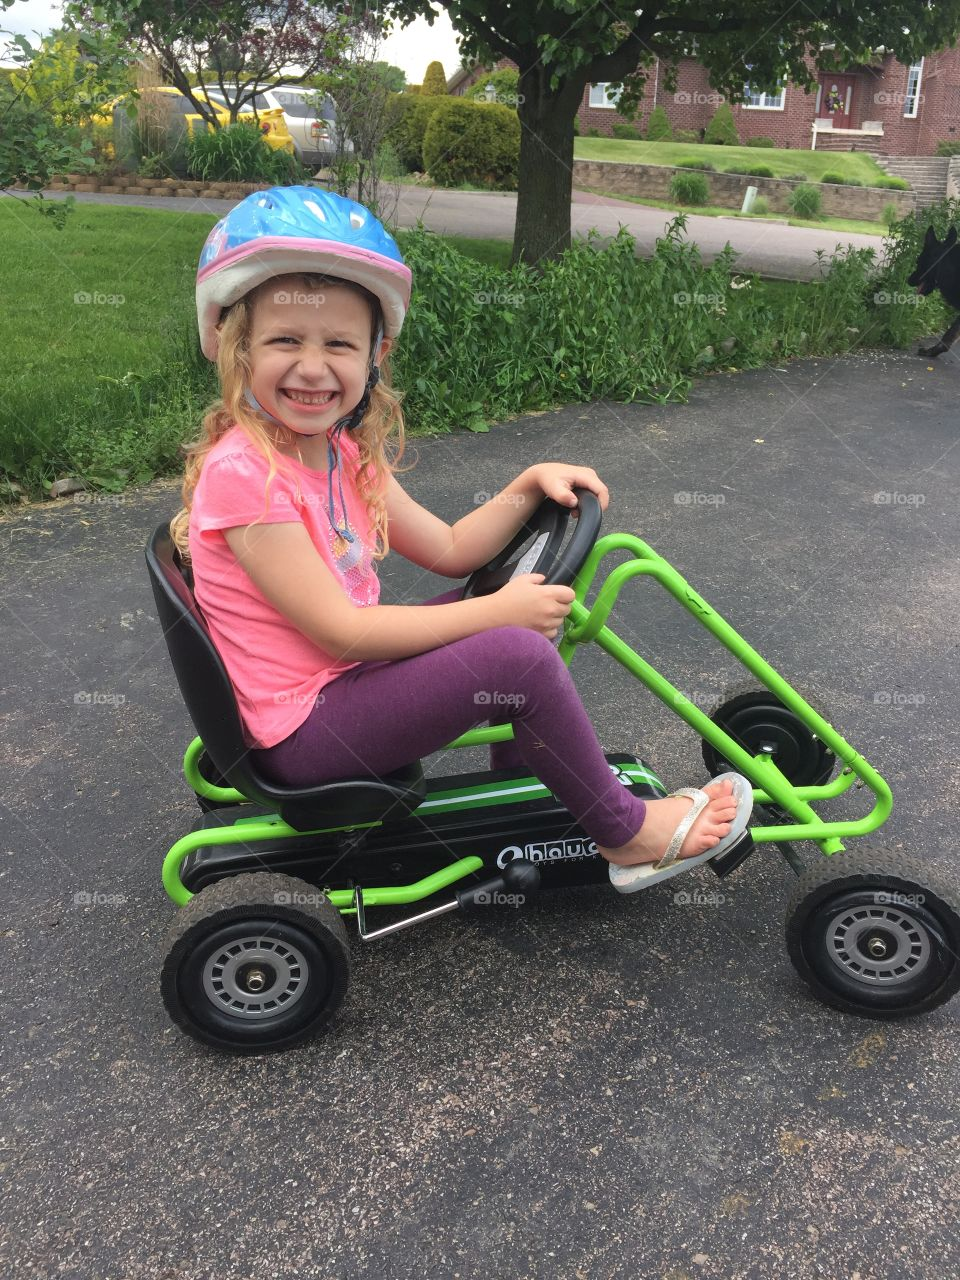 My five year old daughter happily biking along.